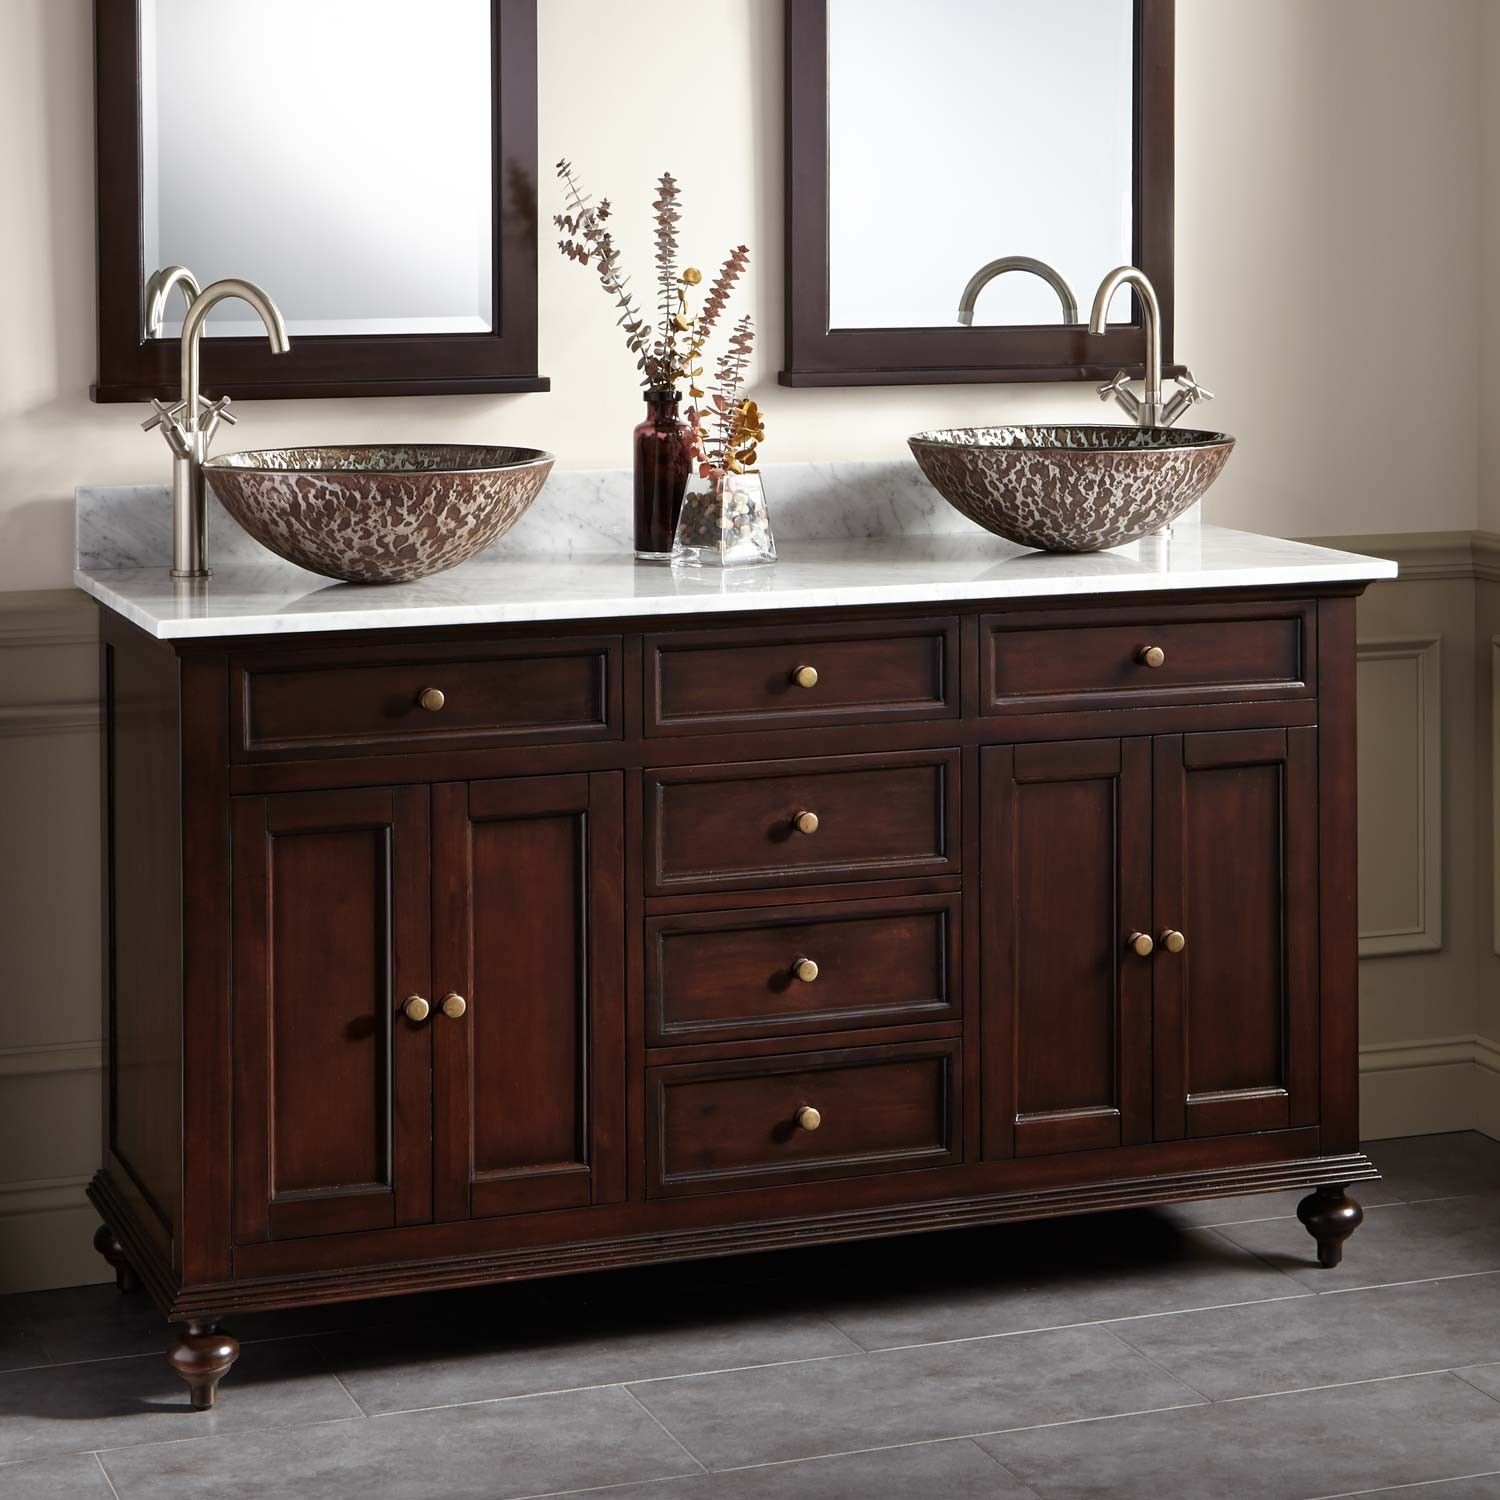 Mahogany Double Vessel Sink Vanity